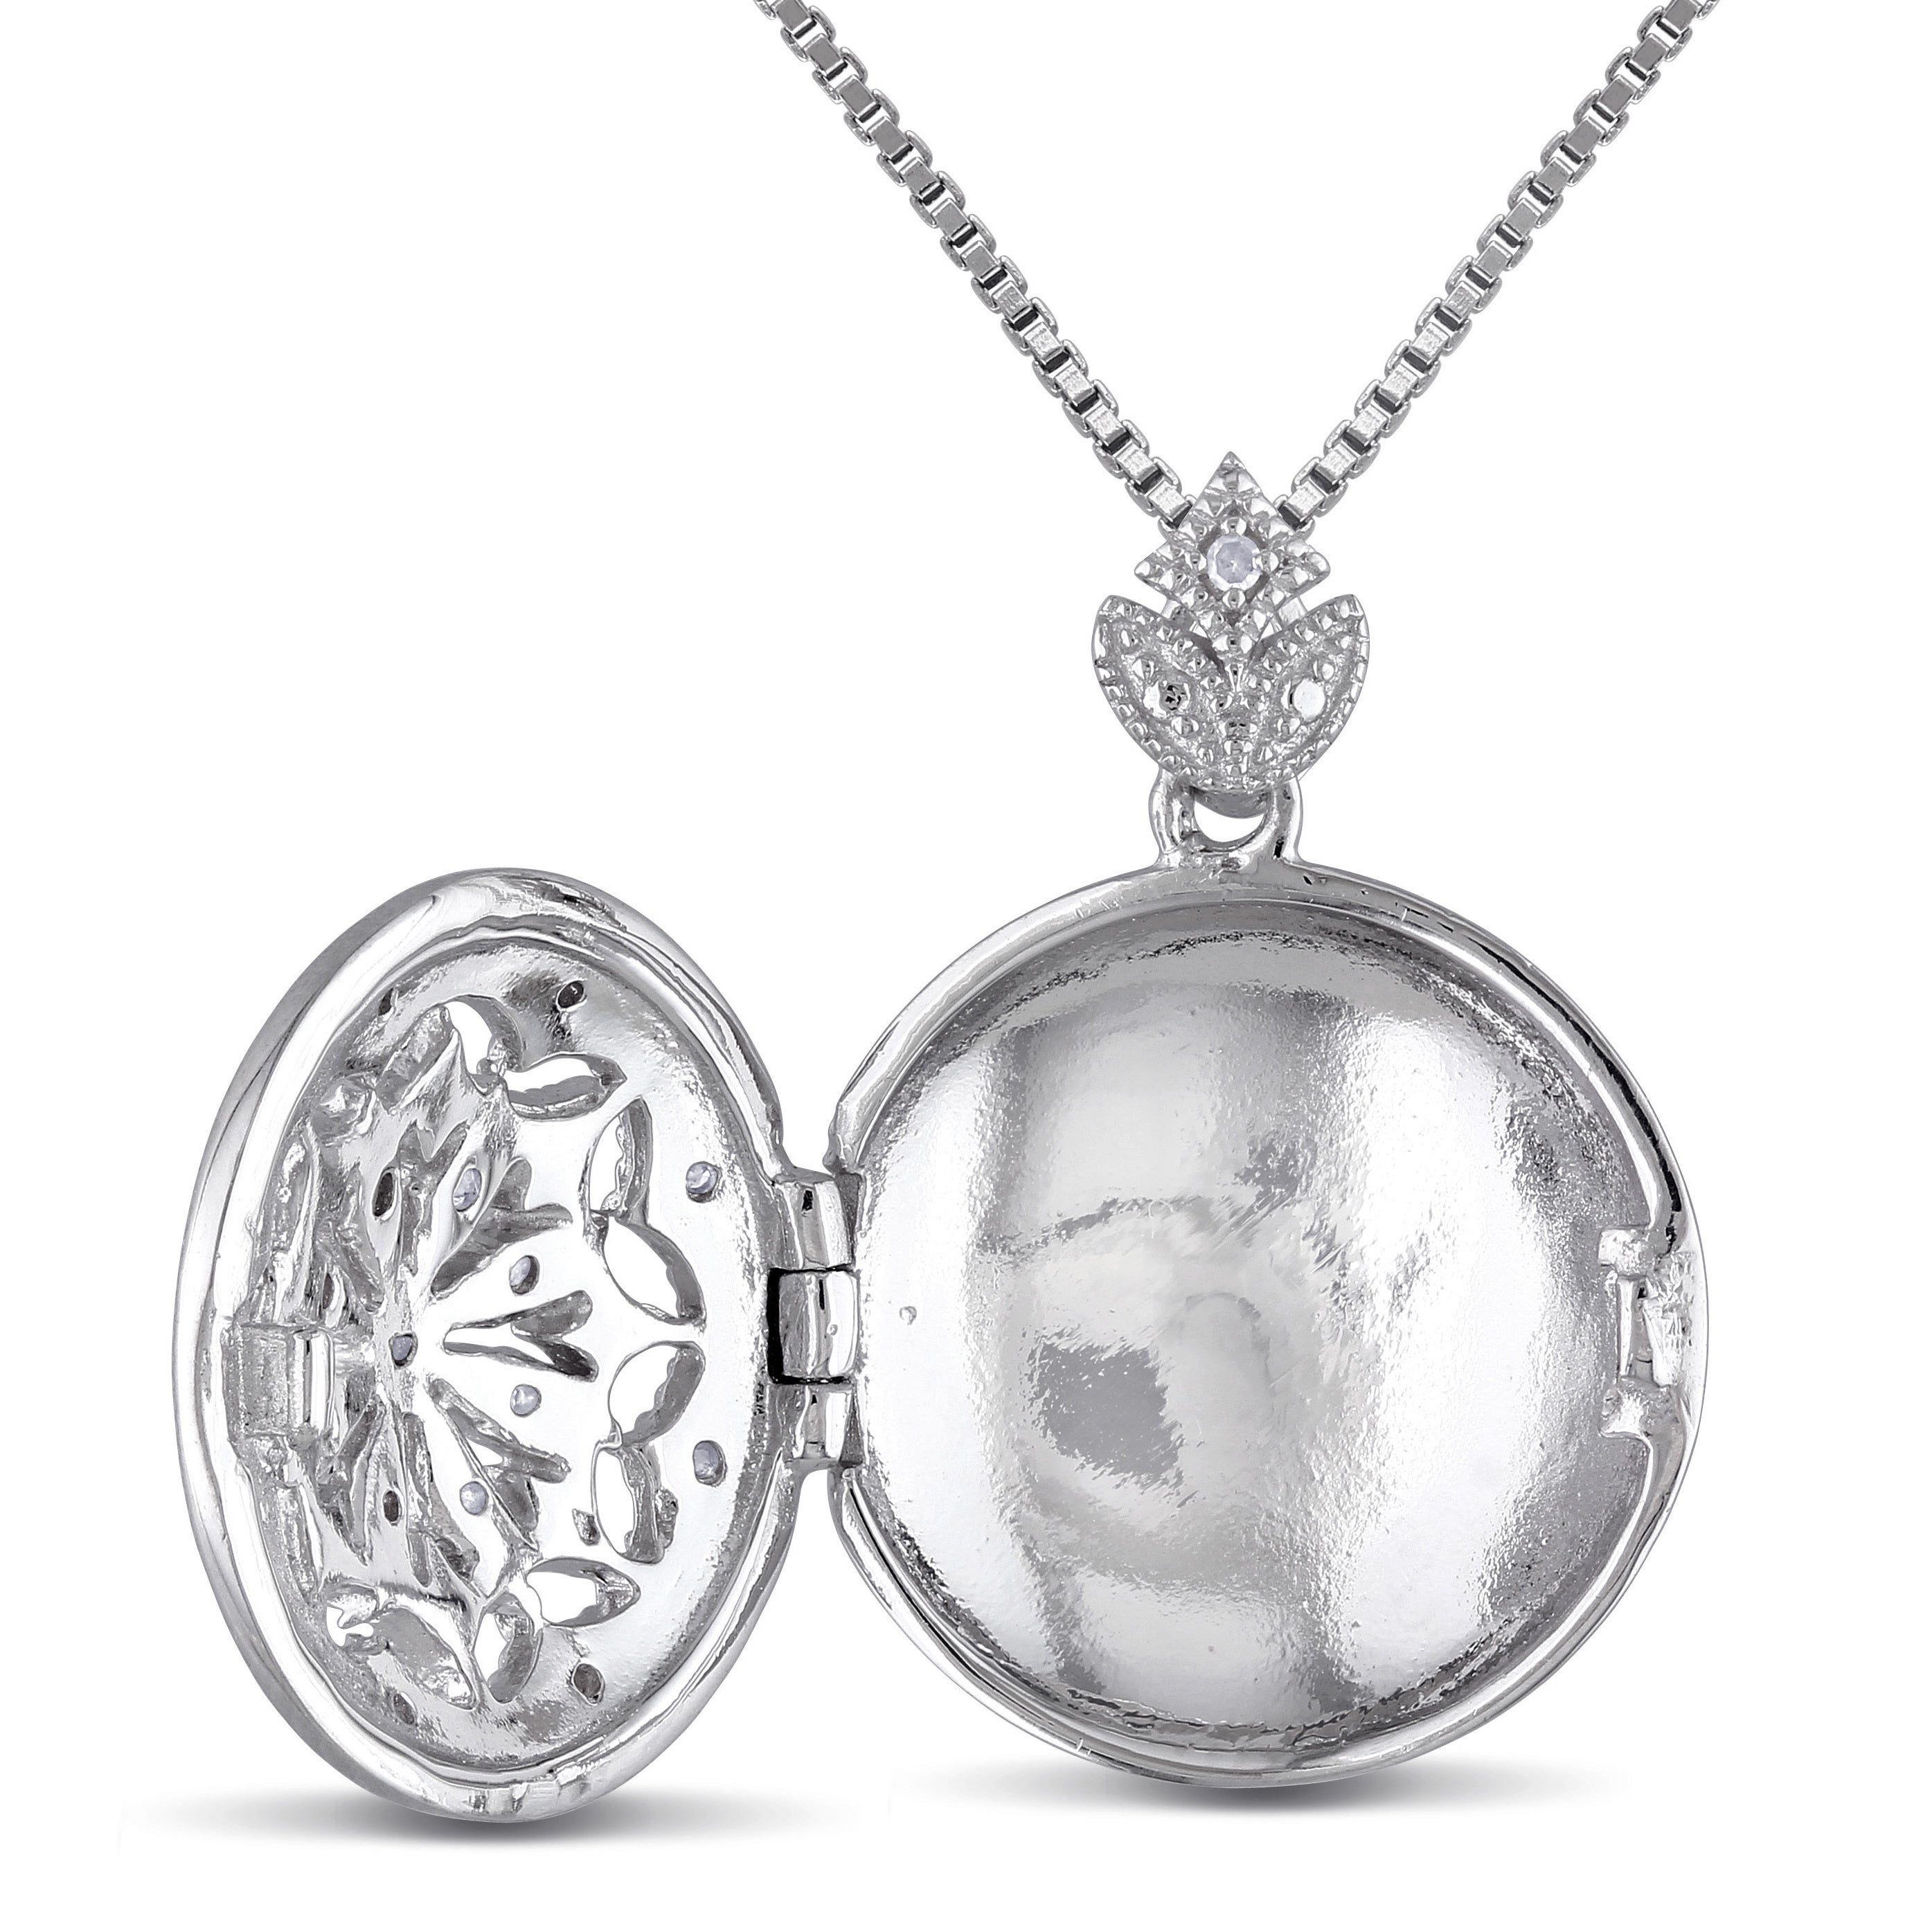 silver lockets etched bling oval polished finish sterling az pendant jewelry locket sstr